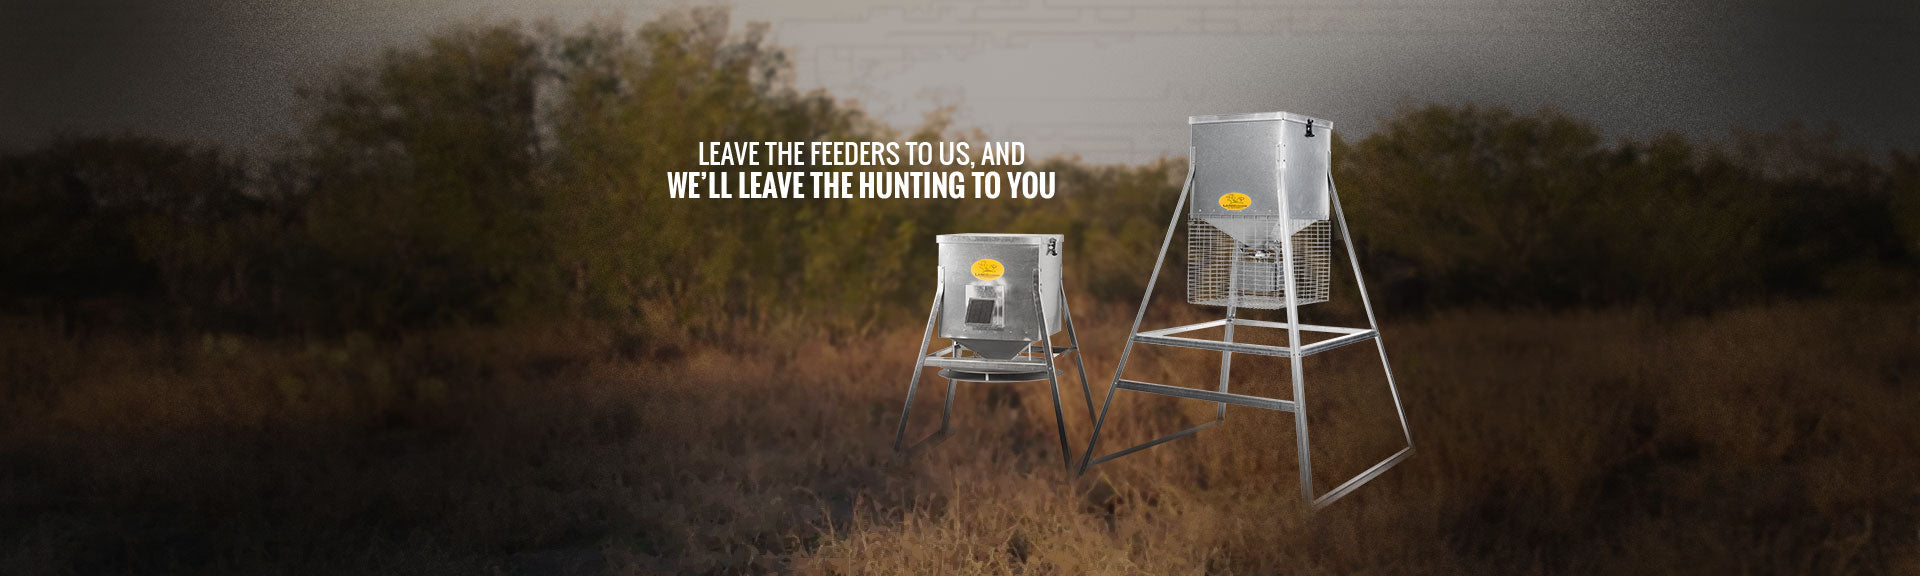 Leave the feeders to us and we'll leave the hunting to you.